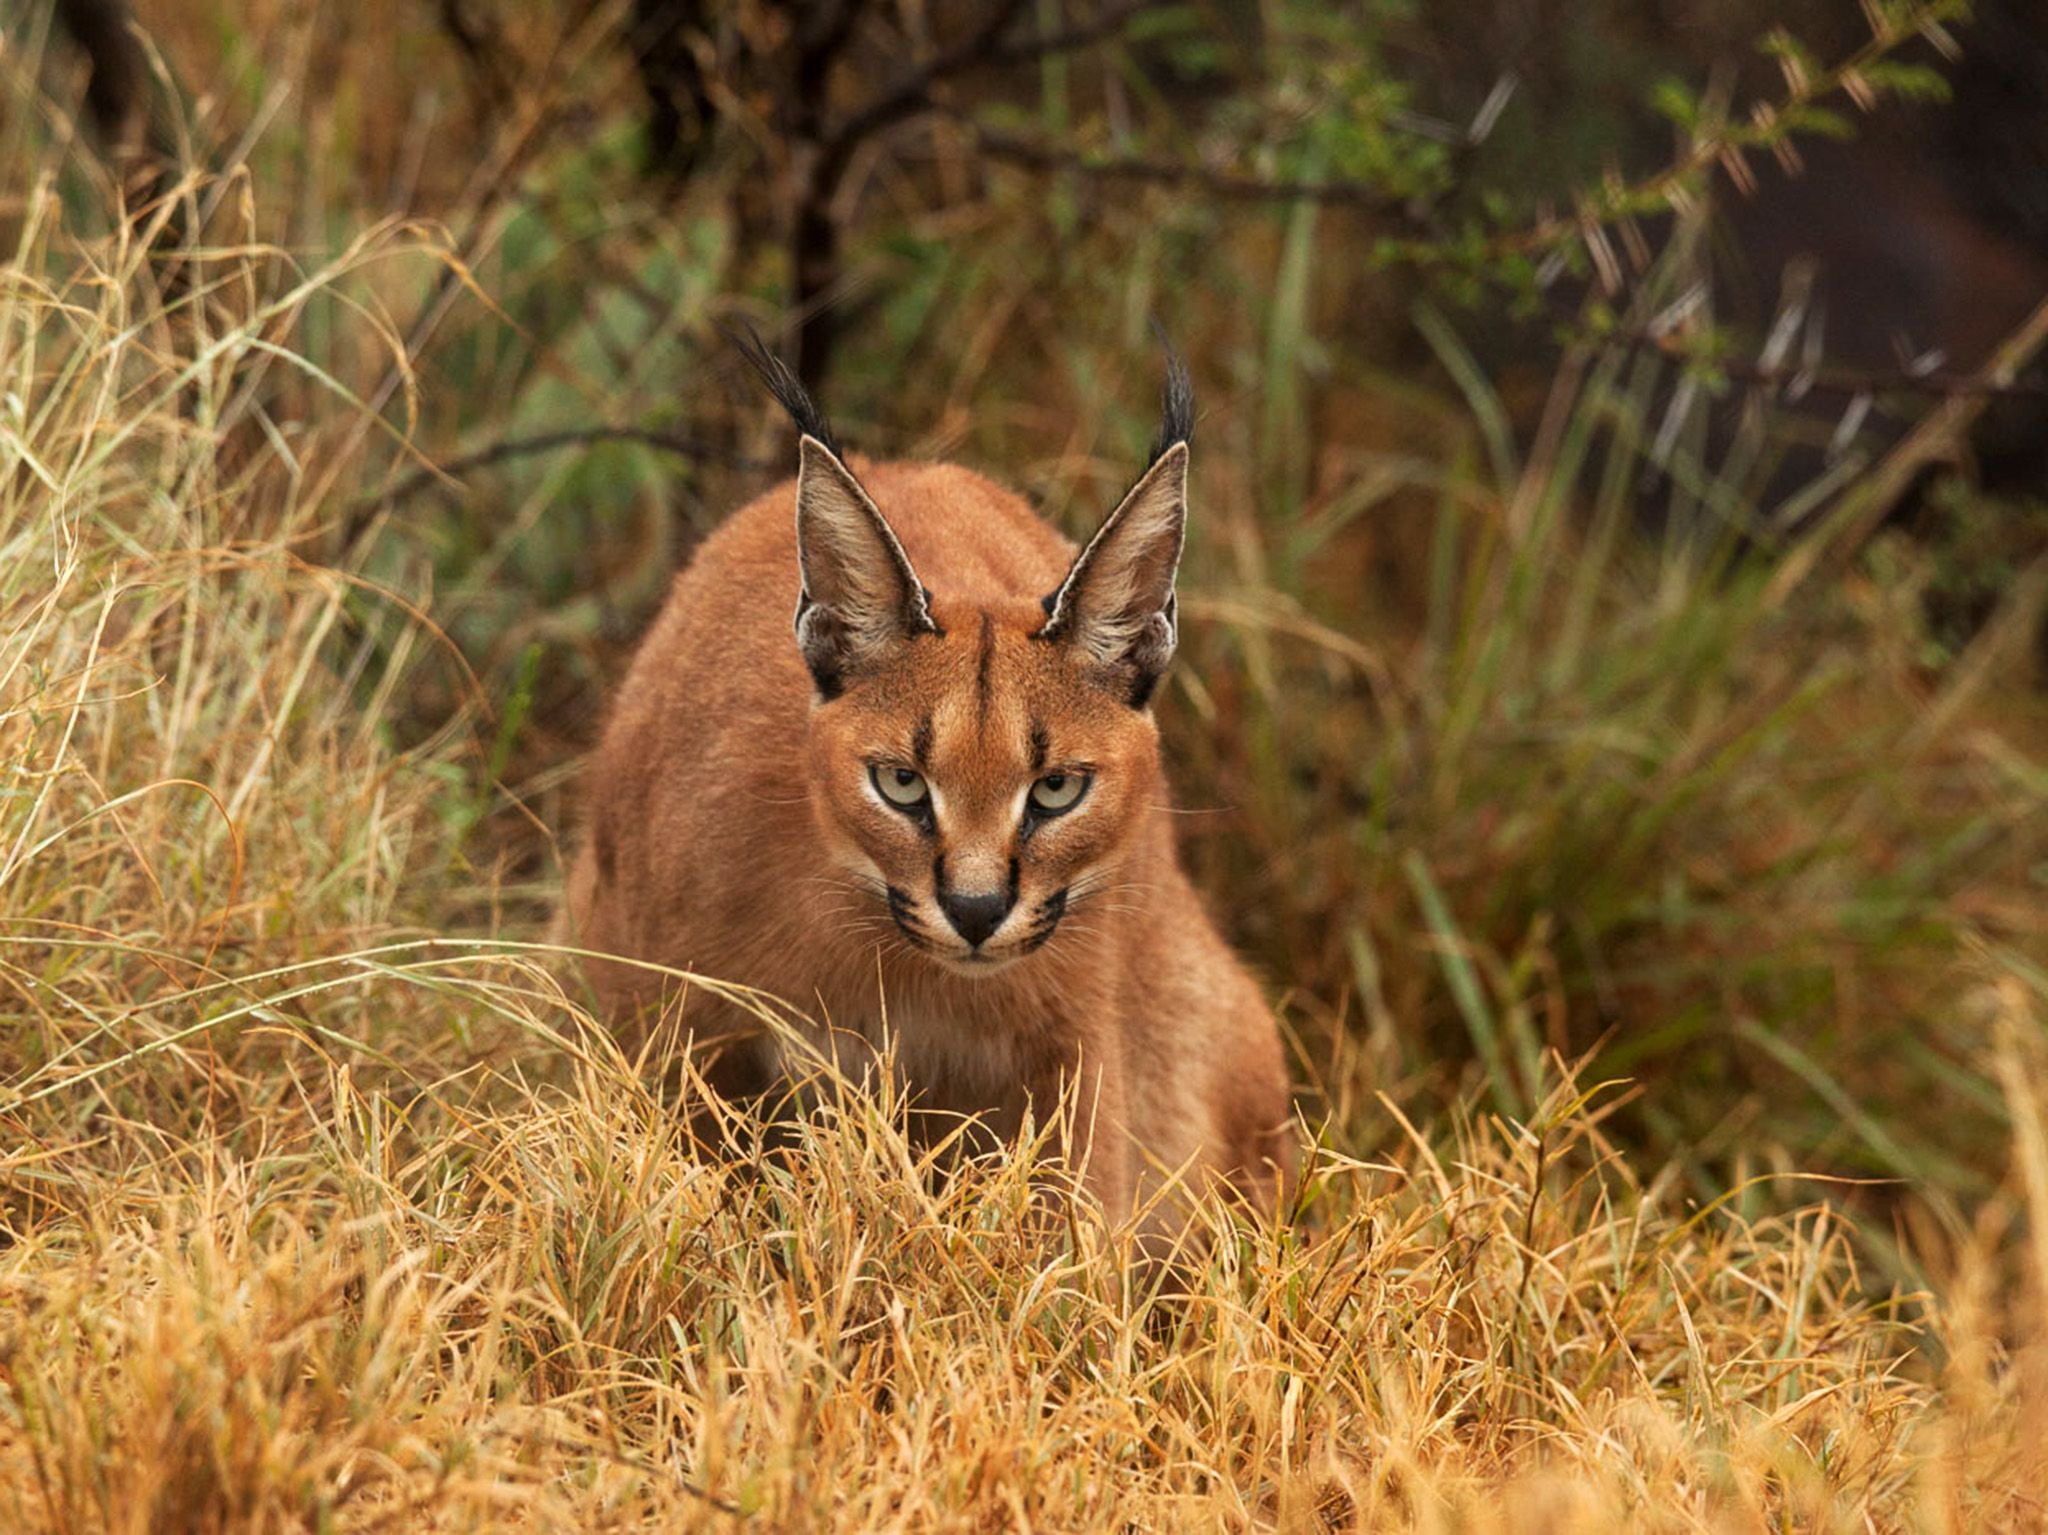 South Africa:  A caracal.  This image is from Wild Little Cats. [Foto del giorno - marzo 2018]